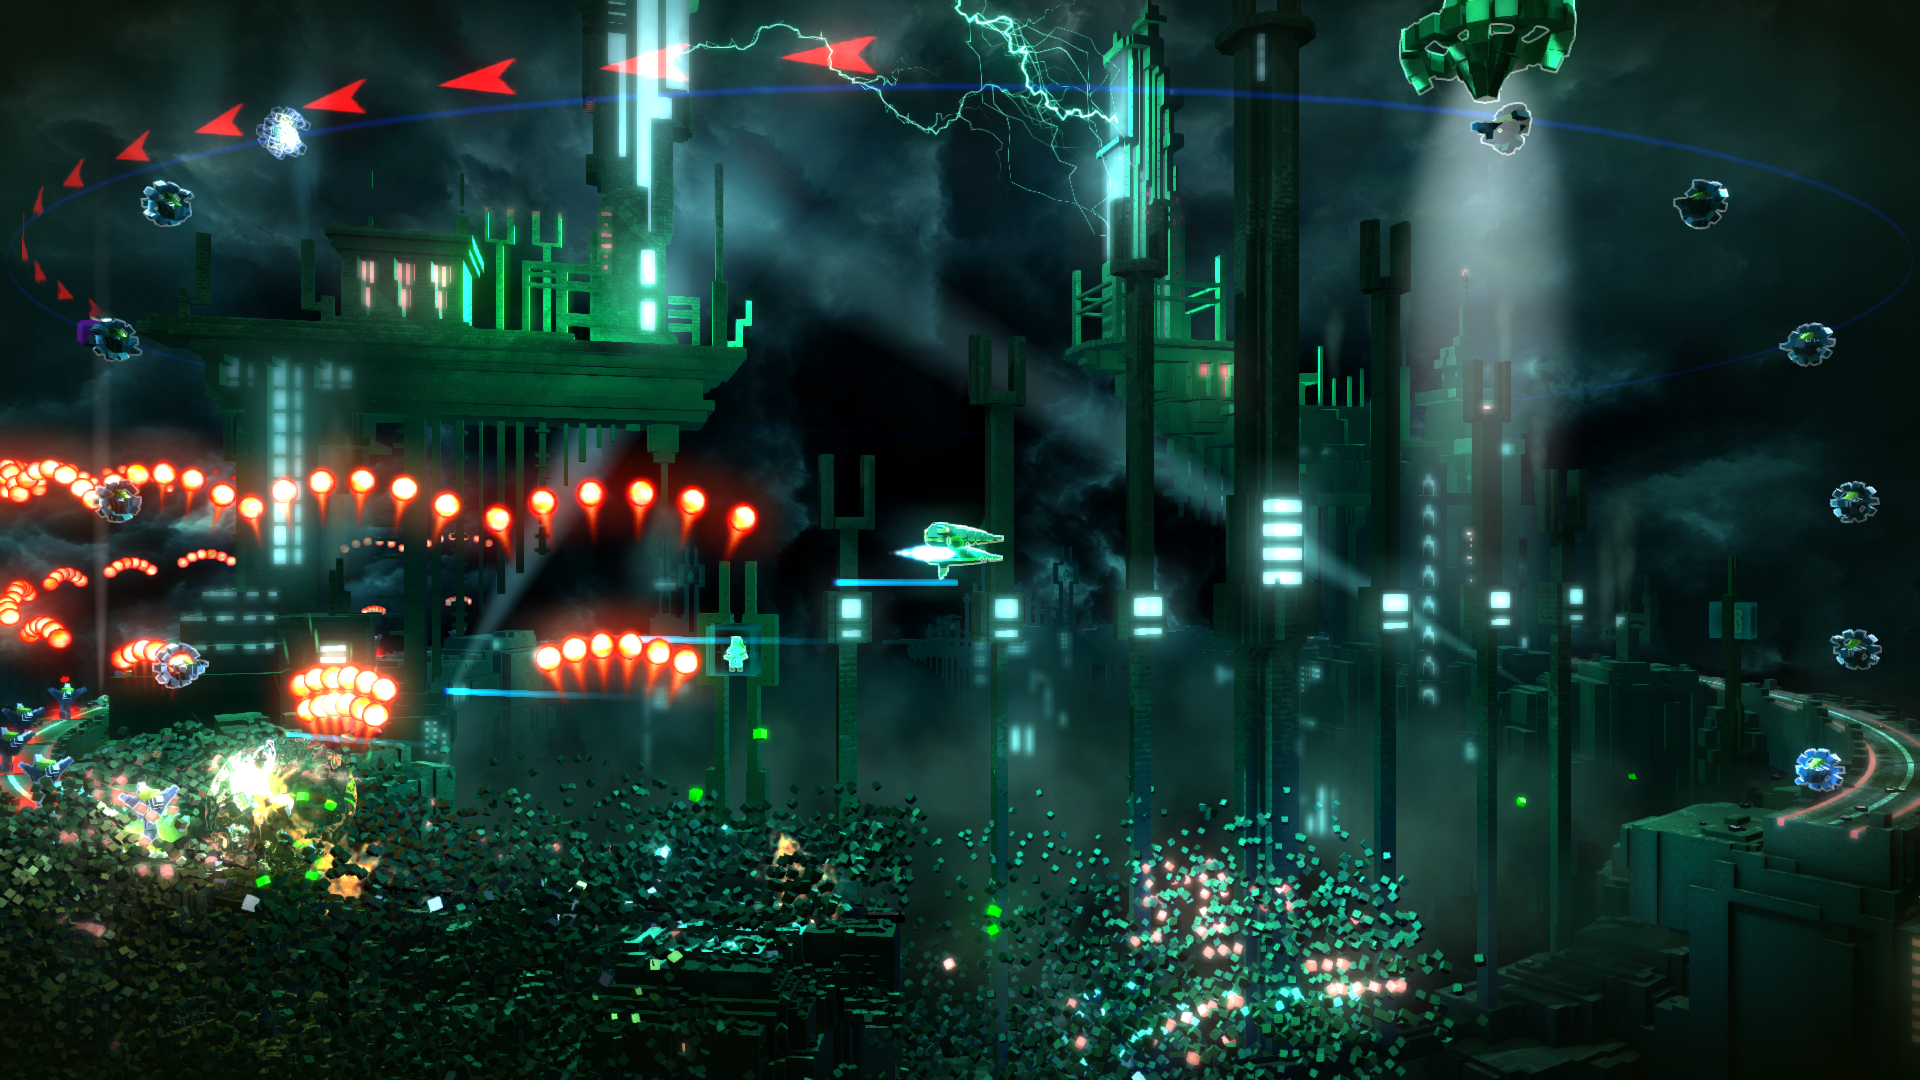 Resogun Game Desktop Wallpaper 49439 1920x1080px